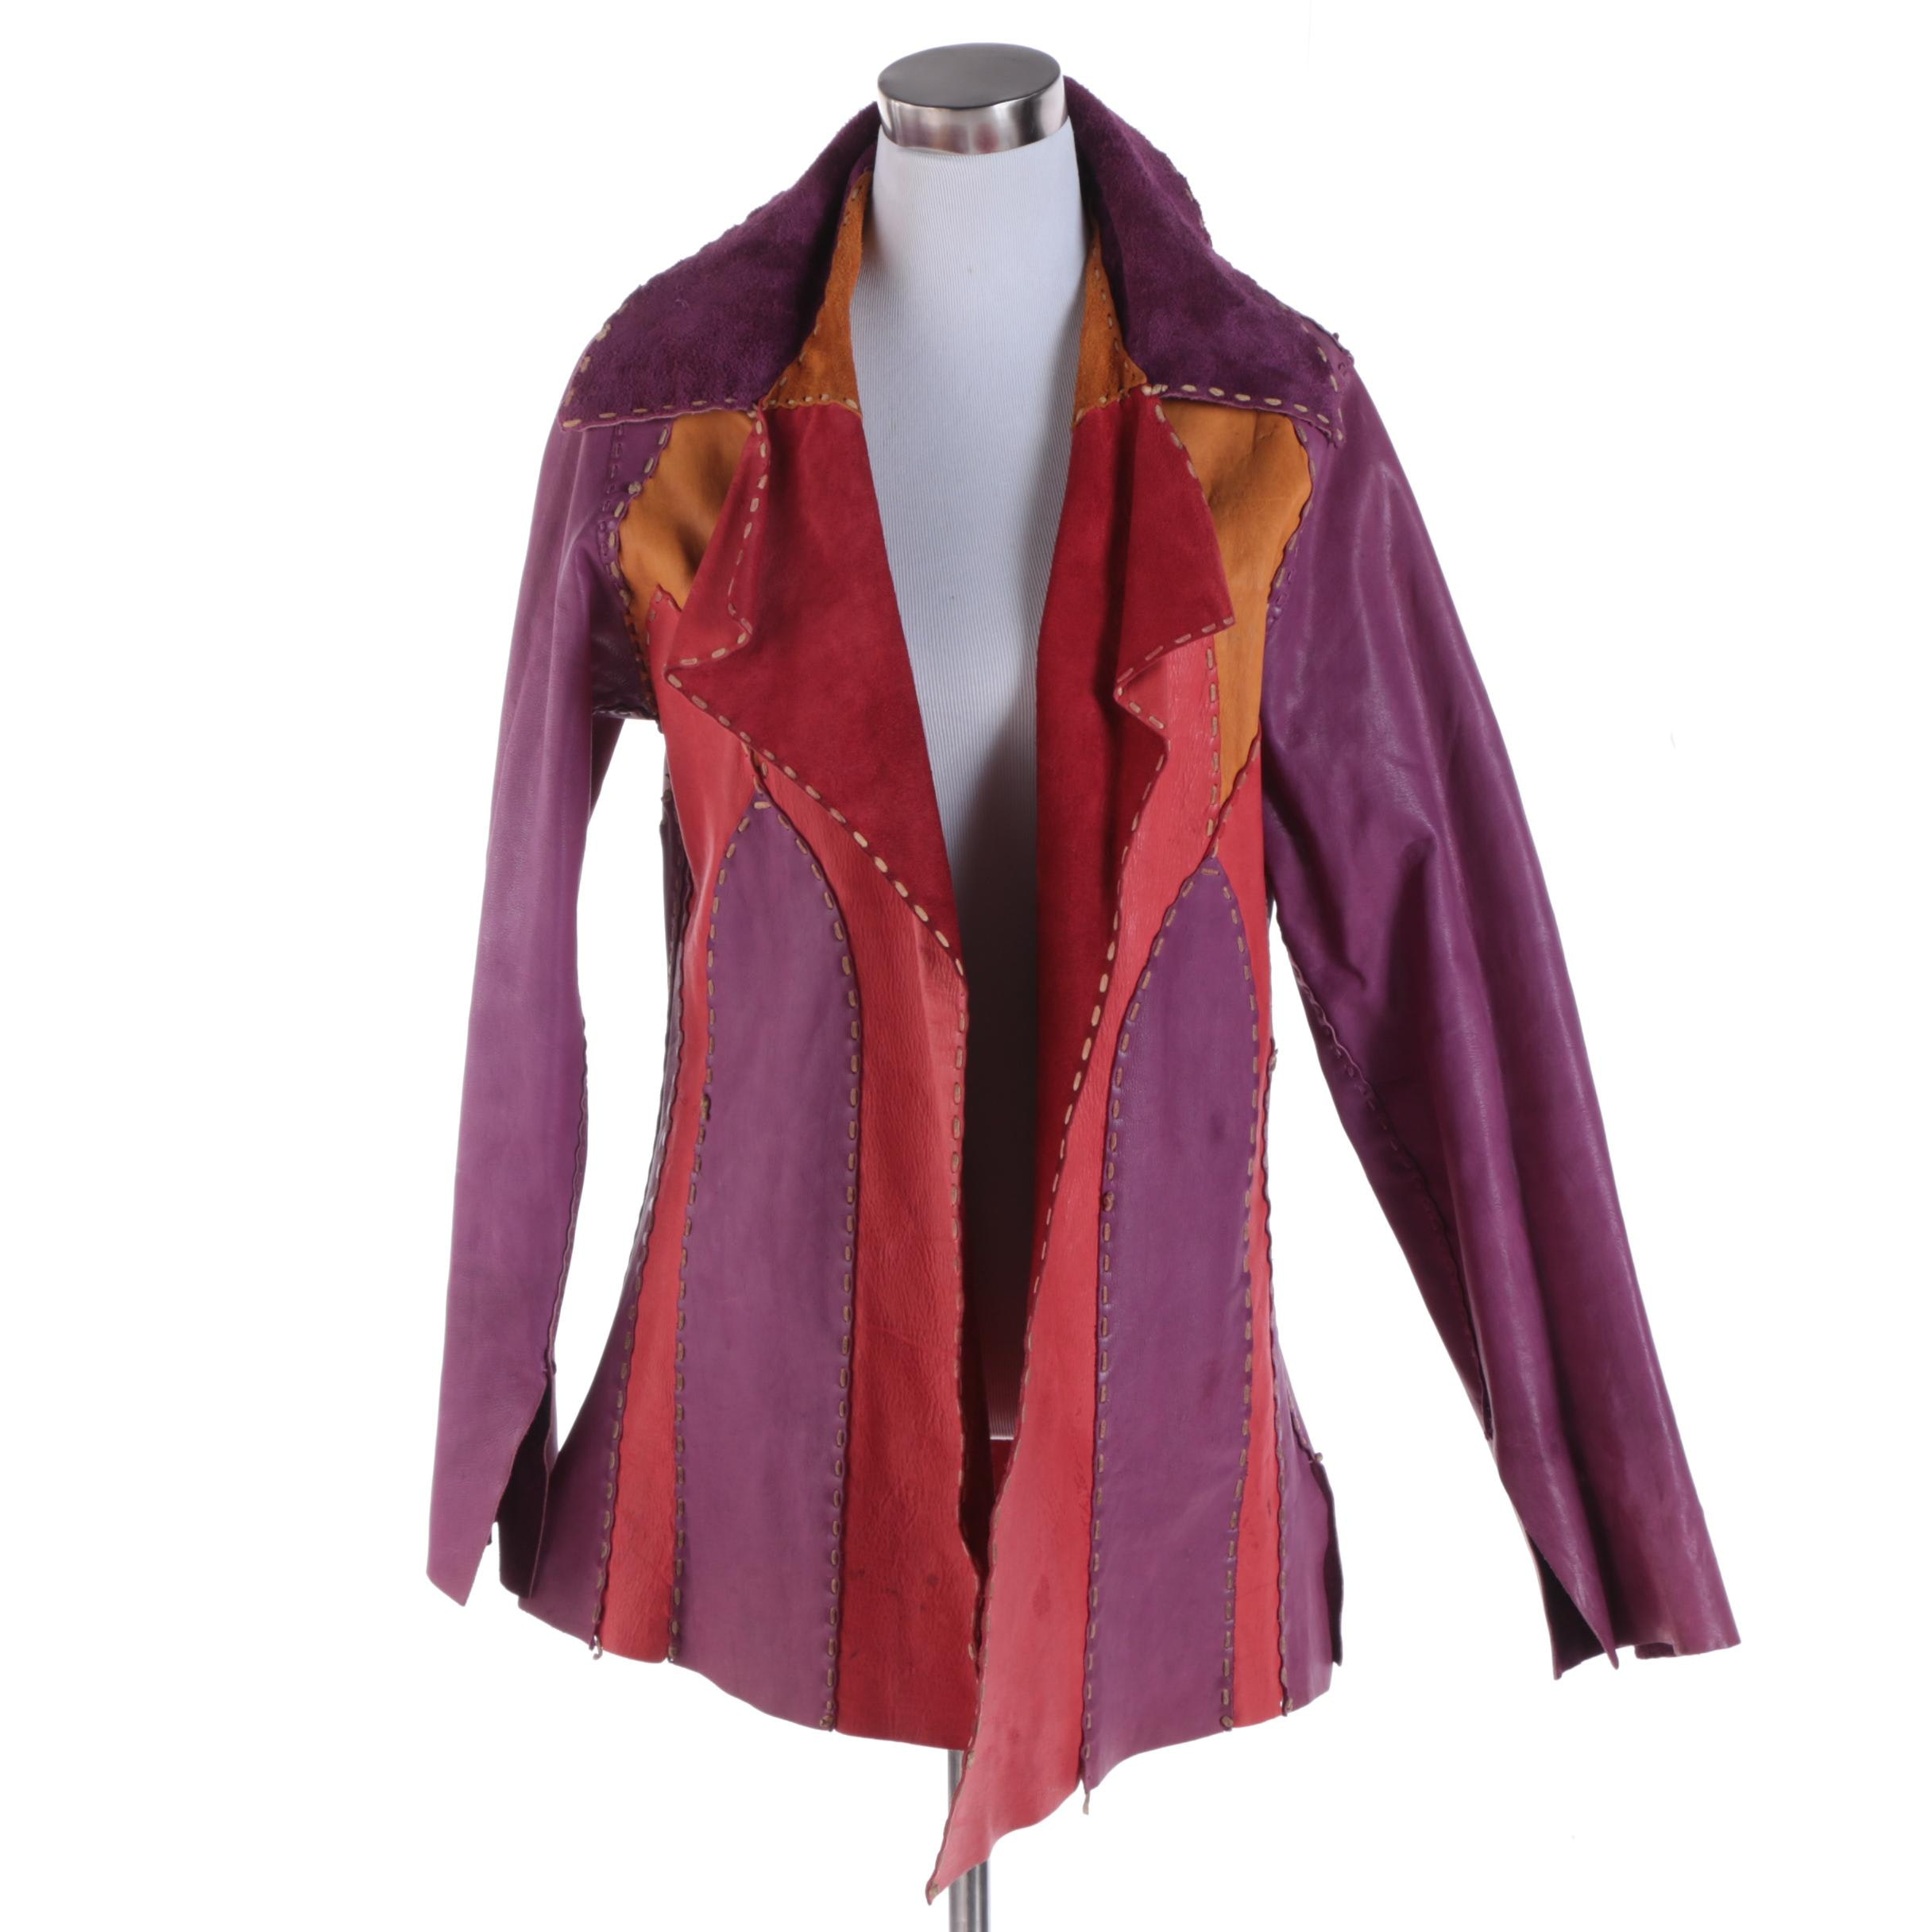 Women's Vintage Color Block Leather and Suede Reversible Jacket